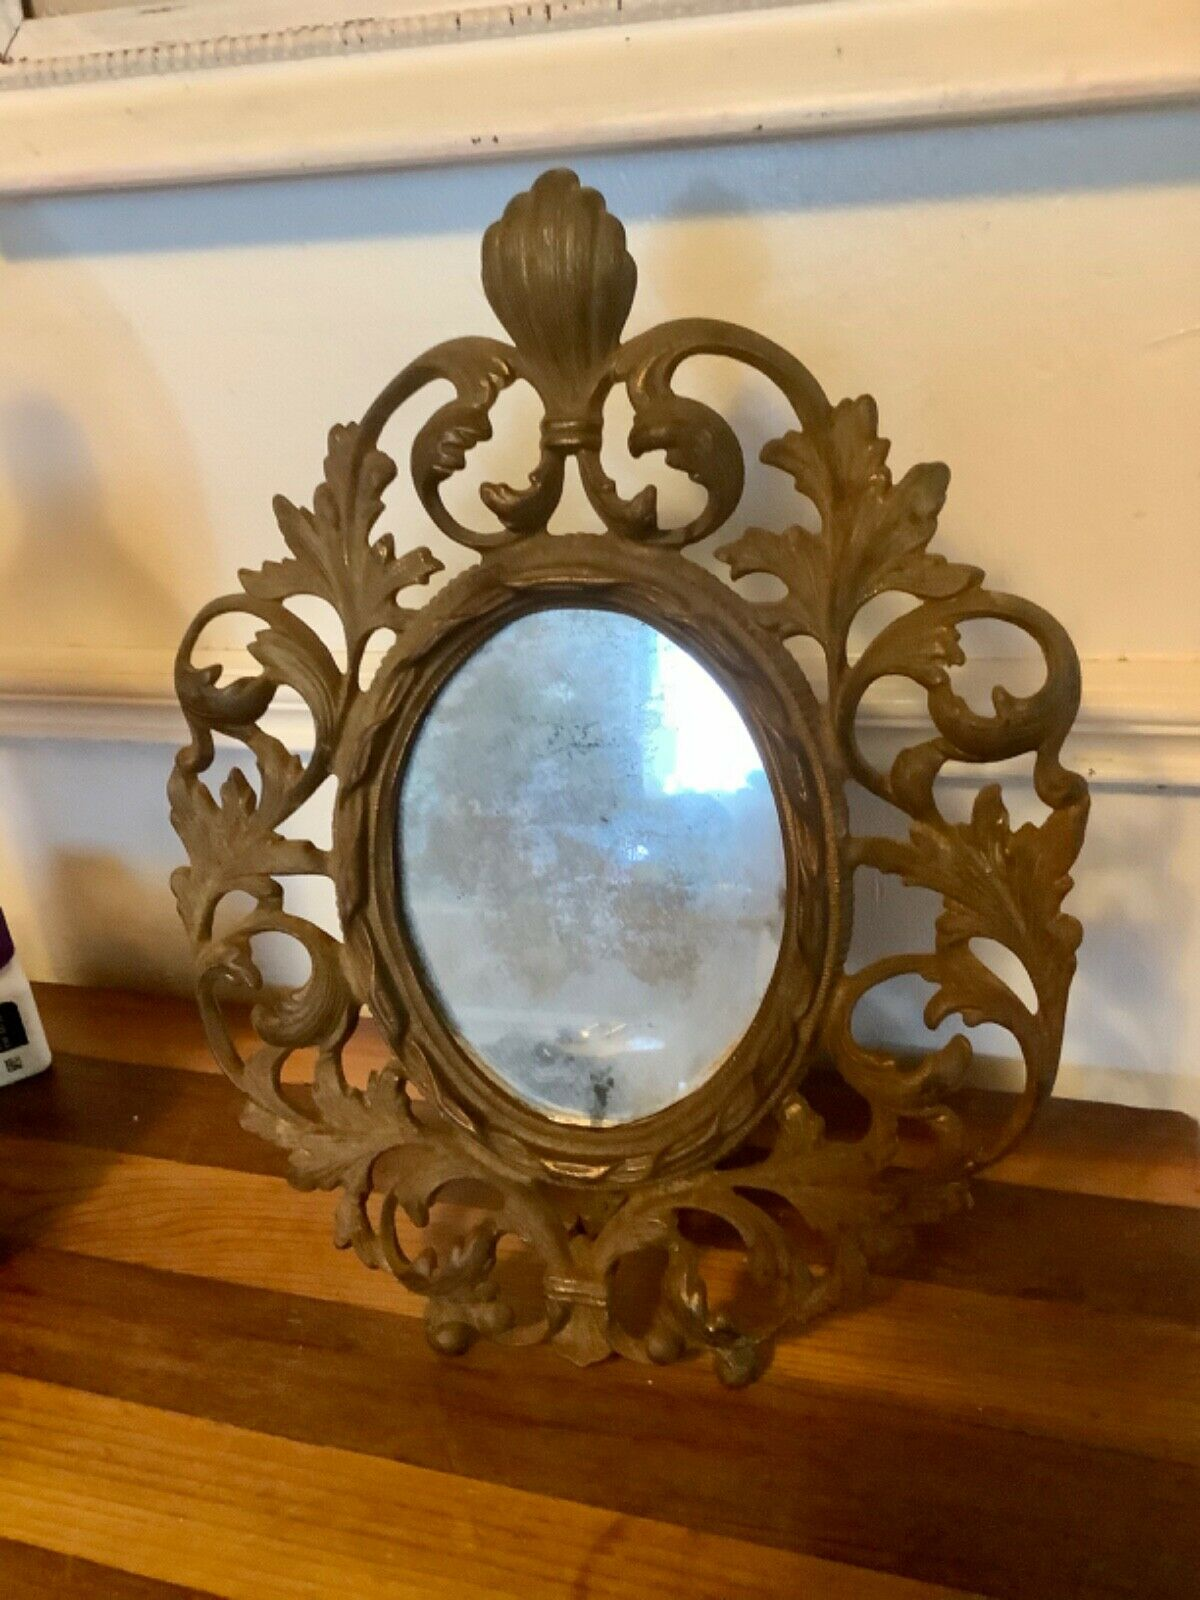 VTG Ornate BRASS FRAME Picture Art Nouveau Hollywood Regency Scrolled Antique 2